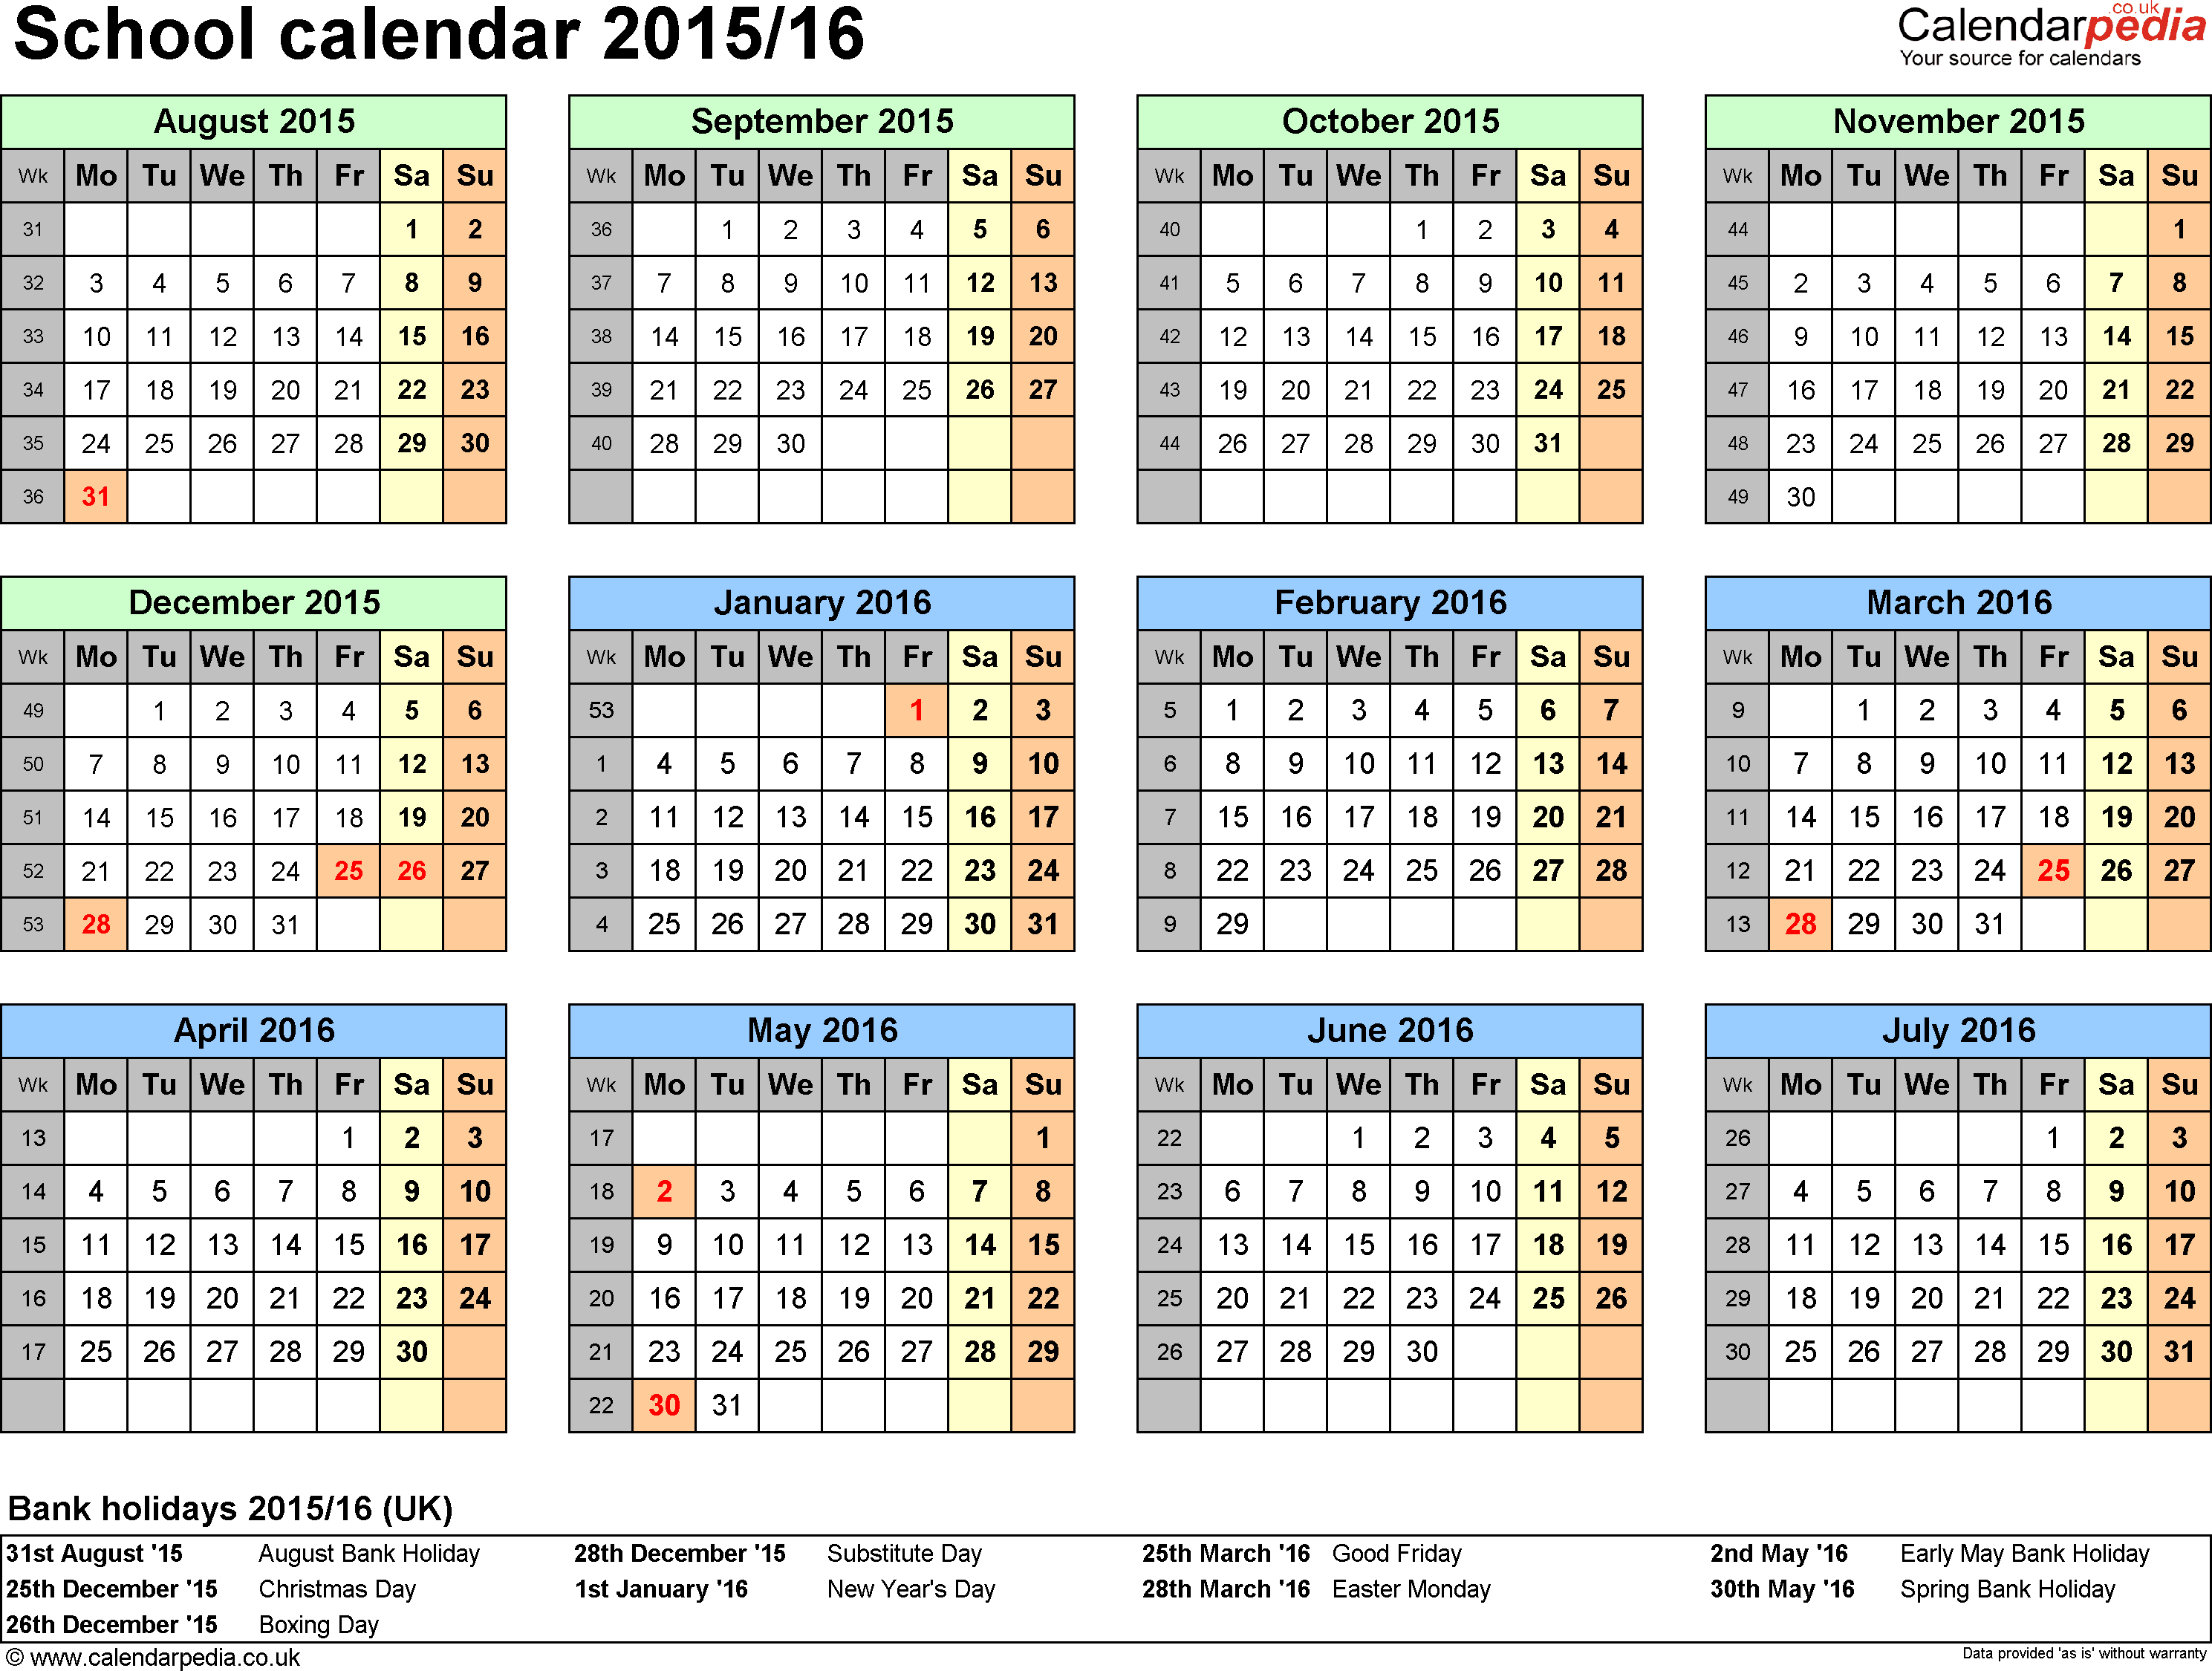 004 School Calendar Template Ideas Microsoft Magnificent Templates in 18 School Calendar Template